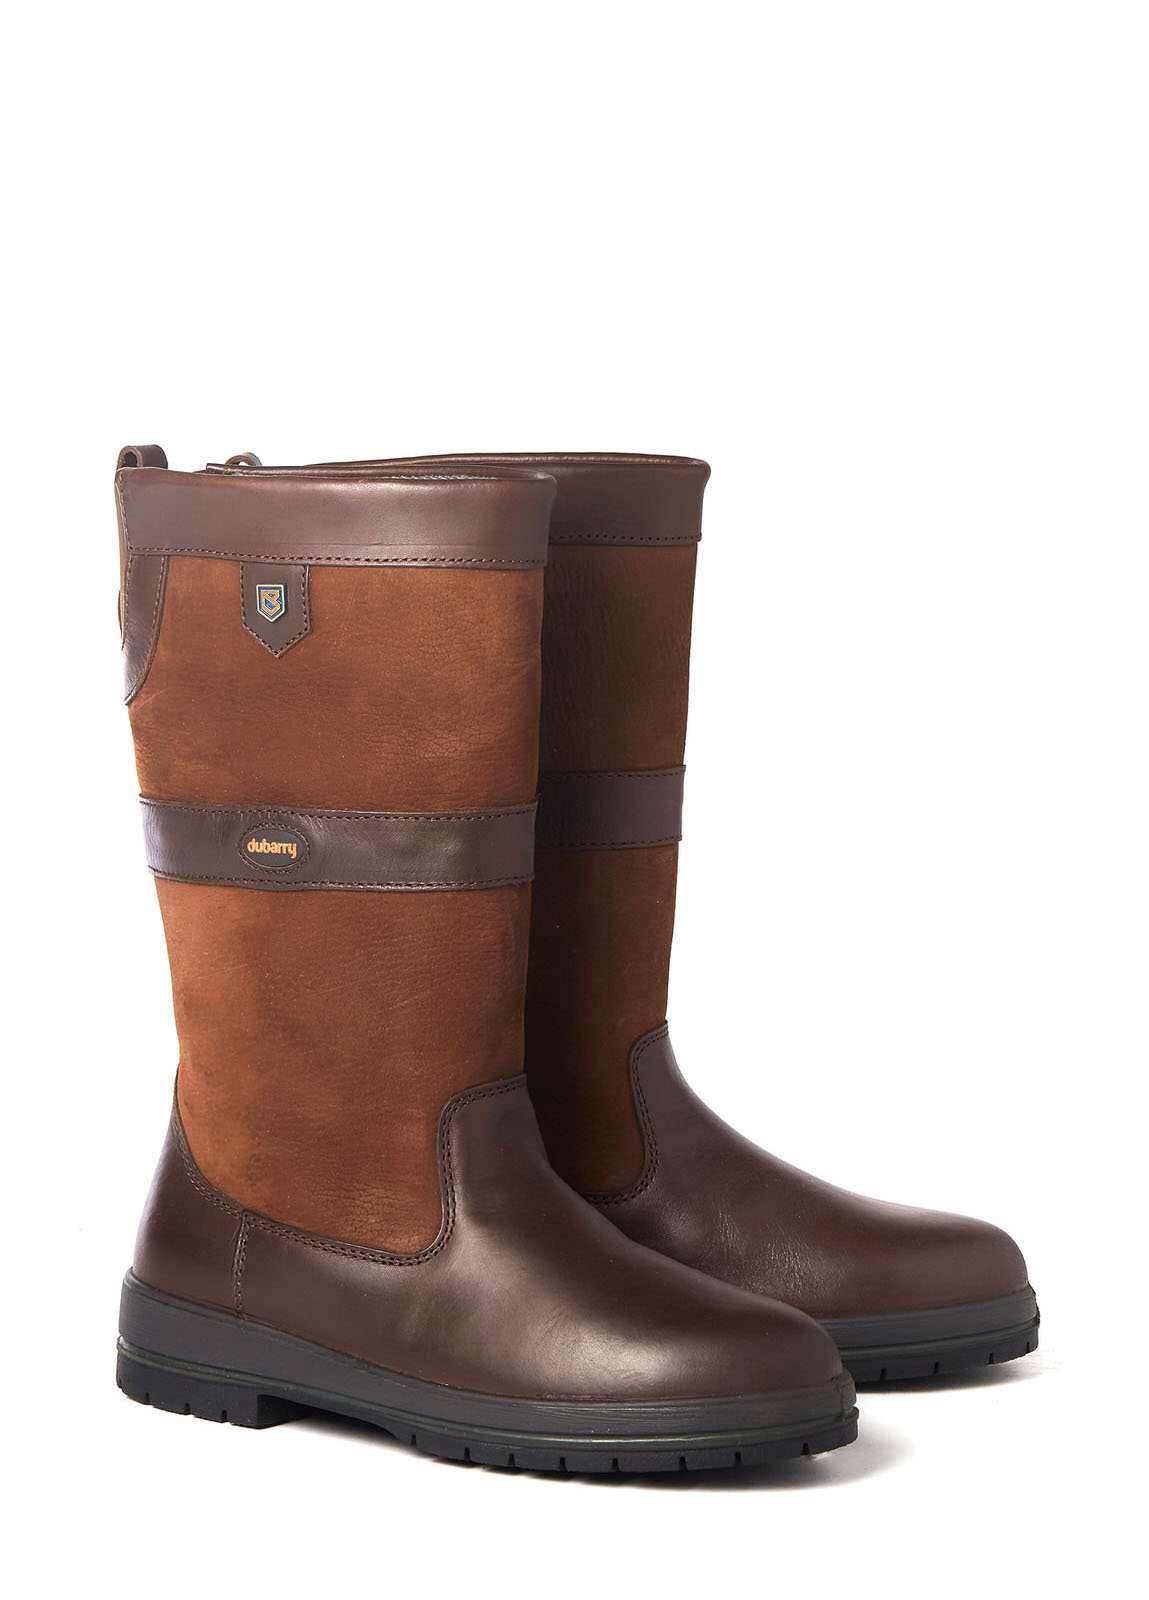 Kildare_Country_Performance_Boot_Navy_Brown_Image_1